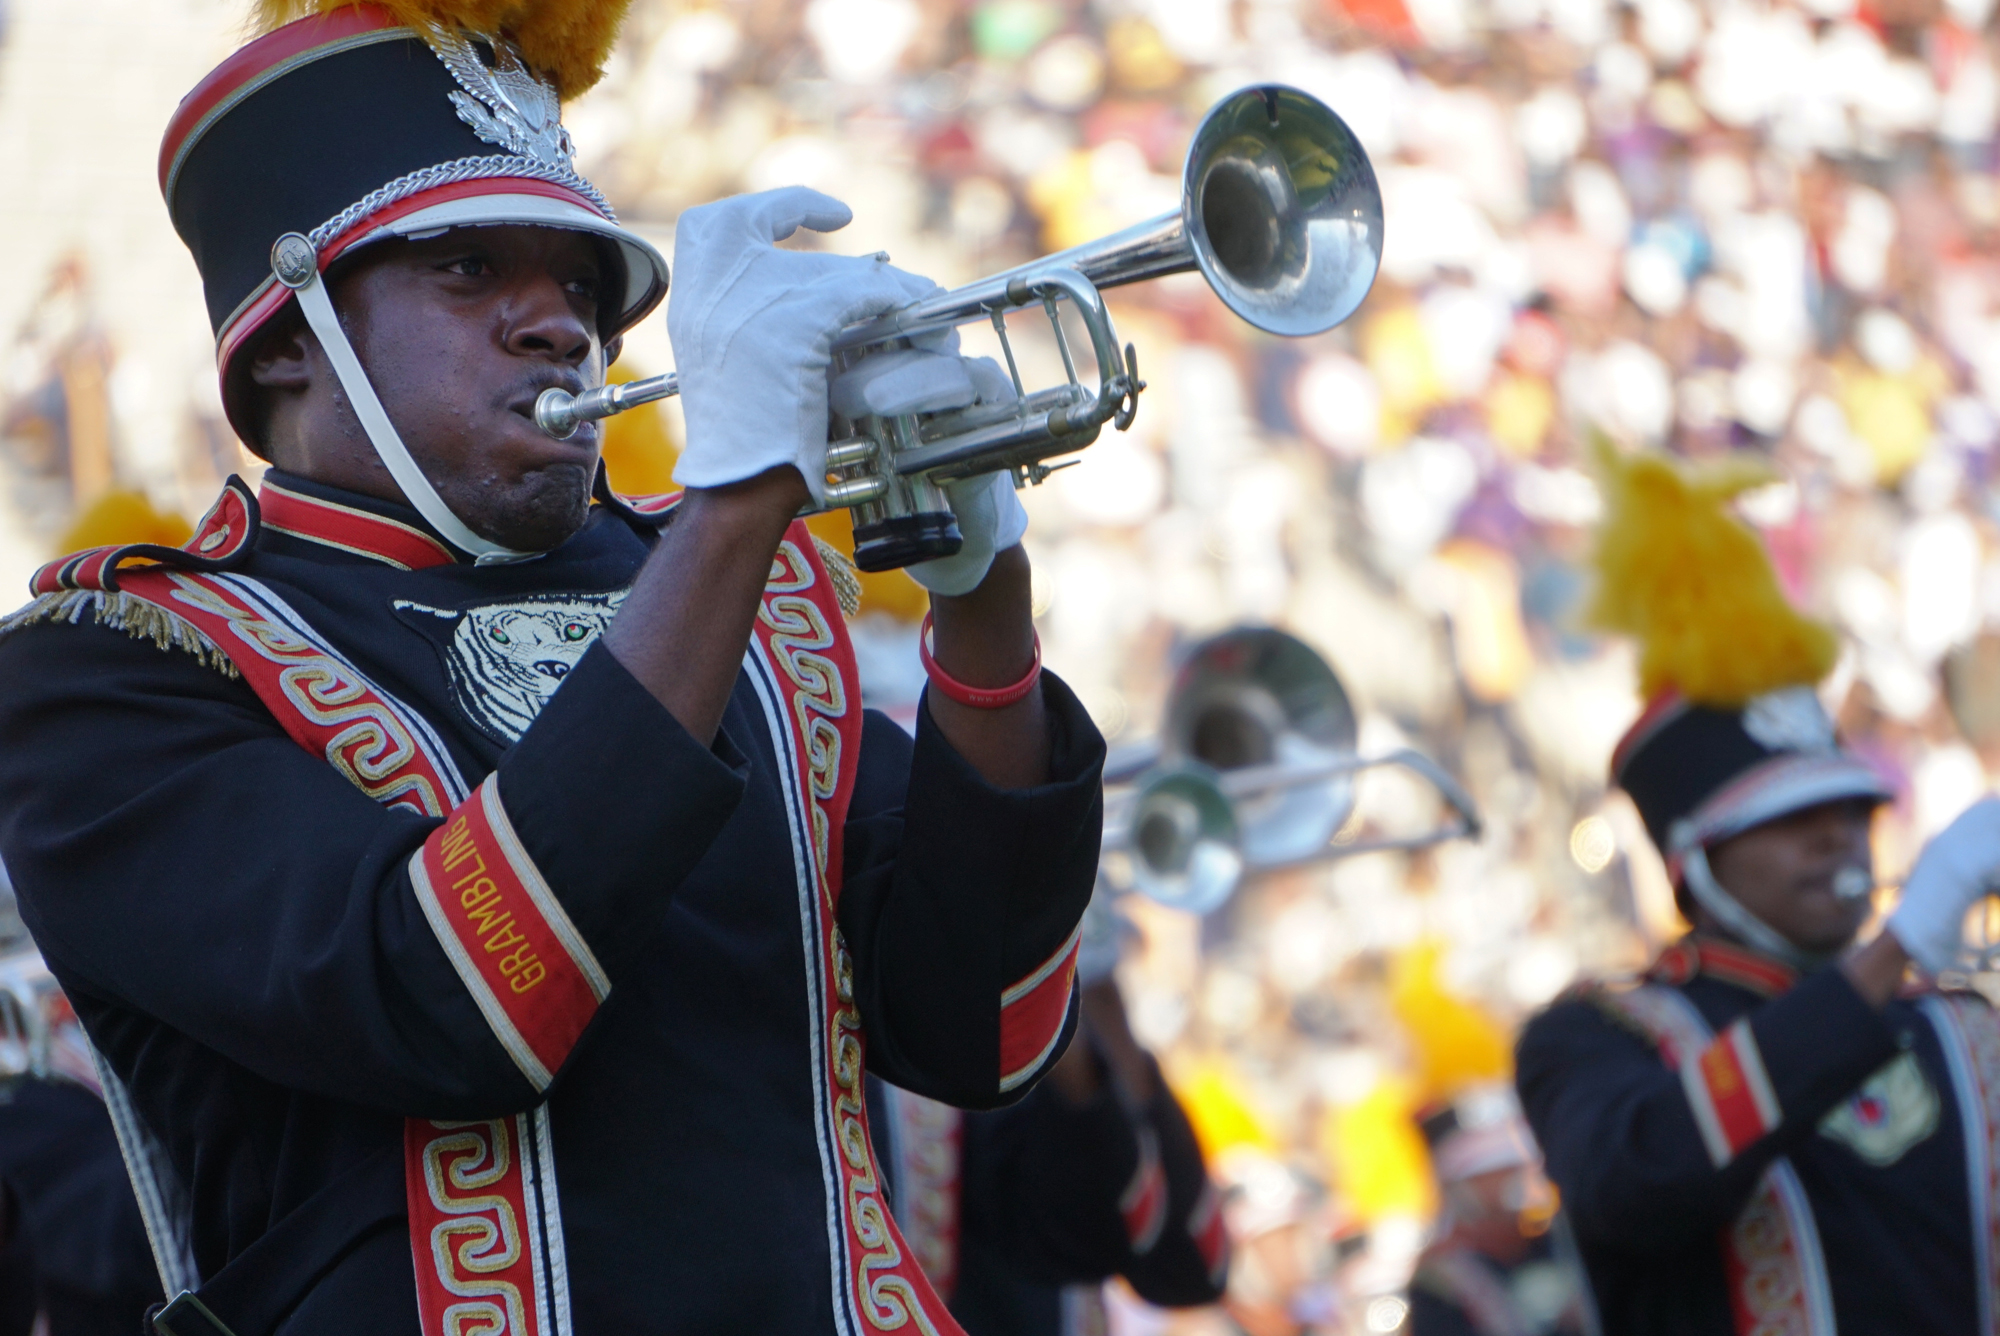 The Grambling State band perform during halftime of the Grambling State and Prairie A&M State Fair Classic at the Cotton Bowl.